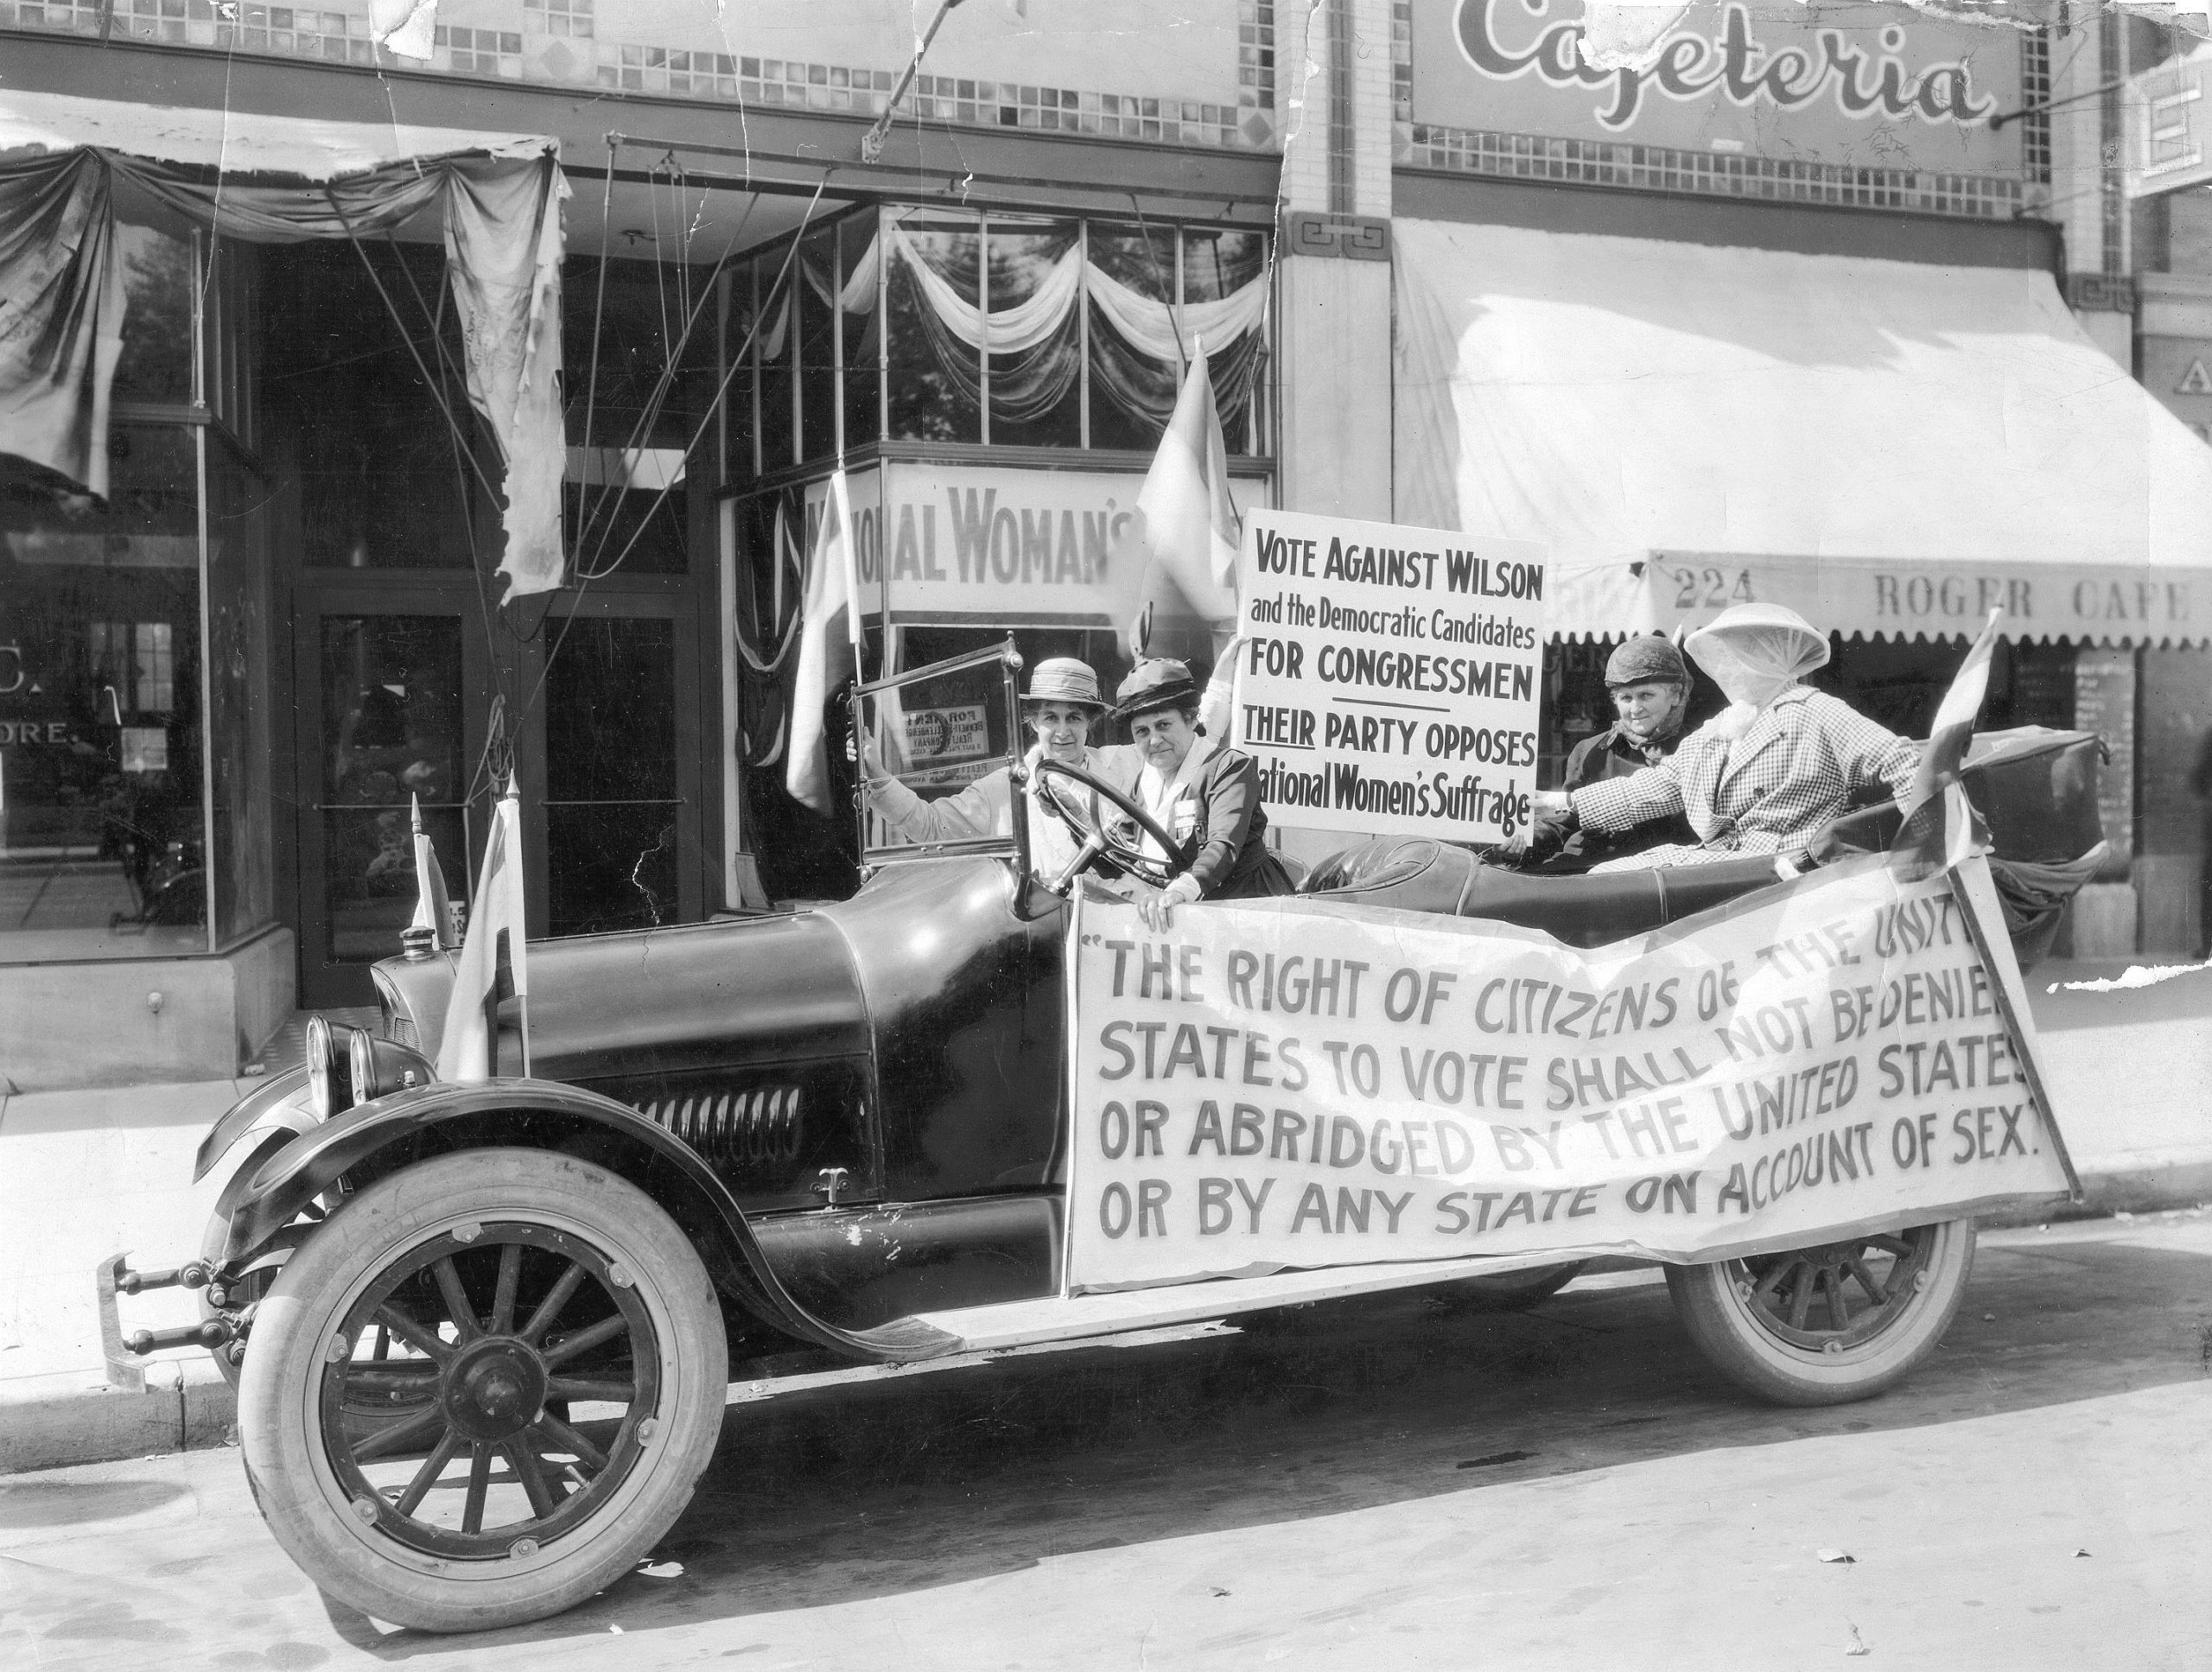 Photo of car in front of the National Women's Party Headquarters in Colorado springs